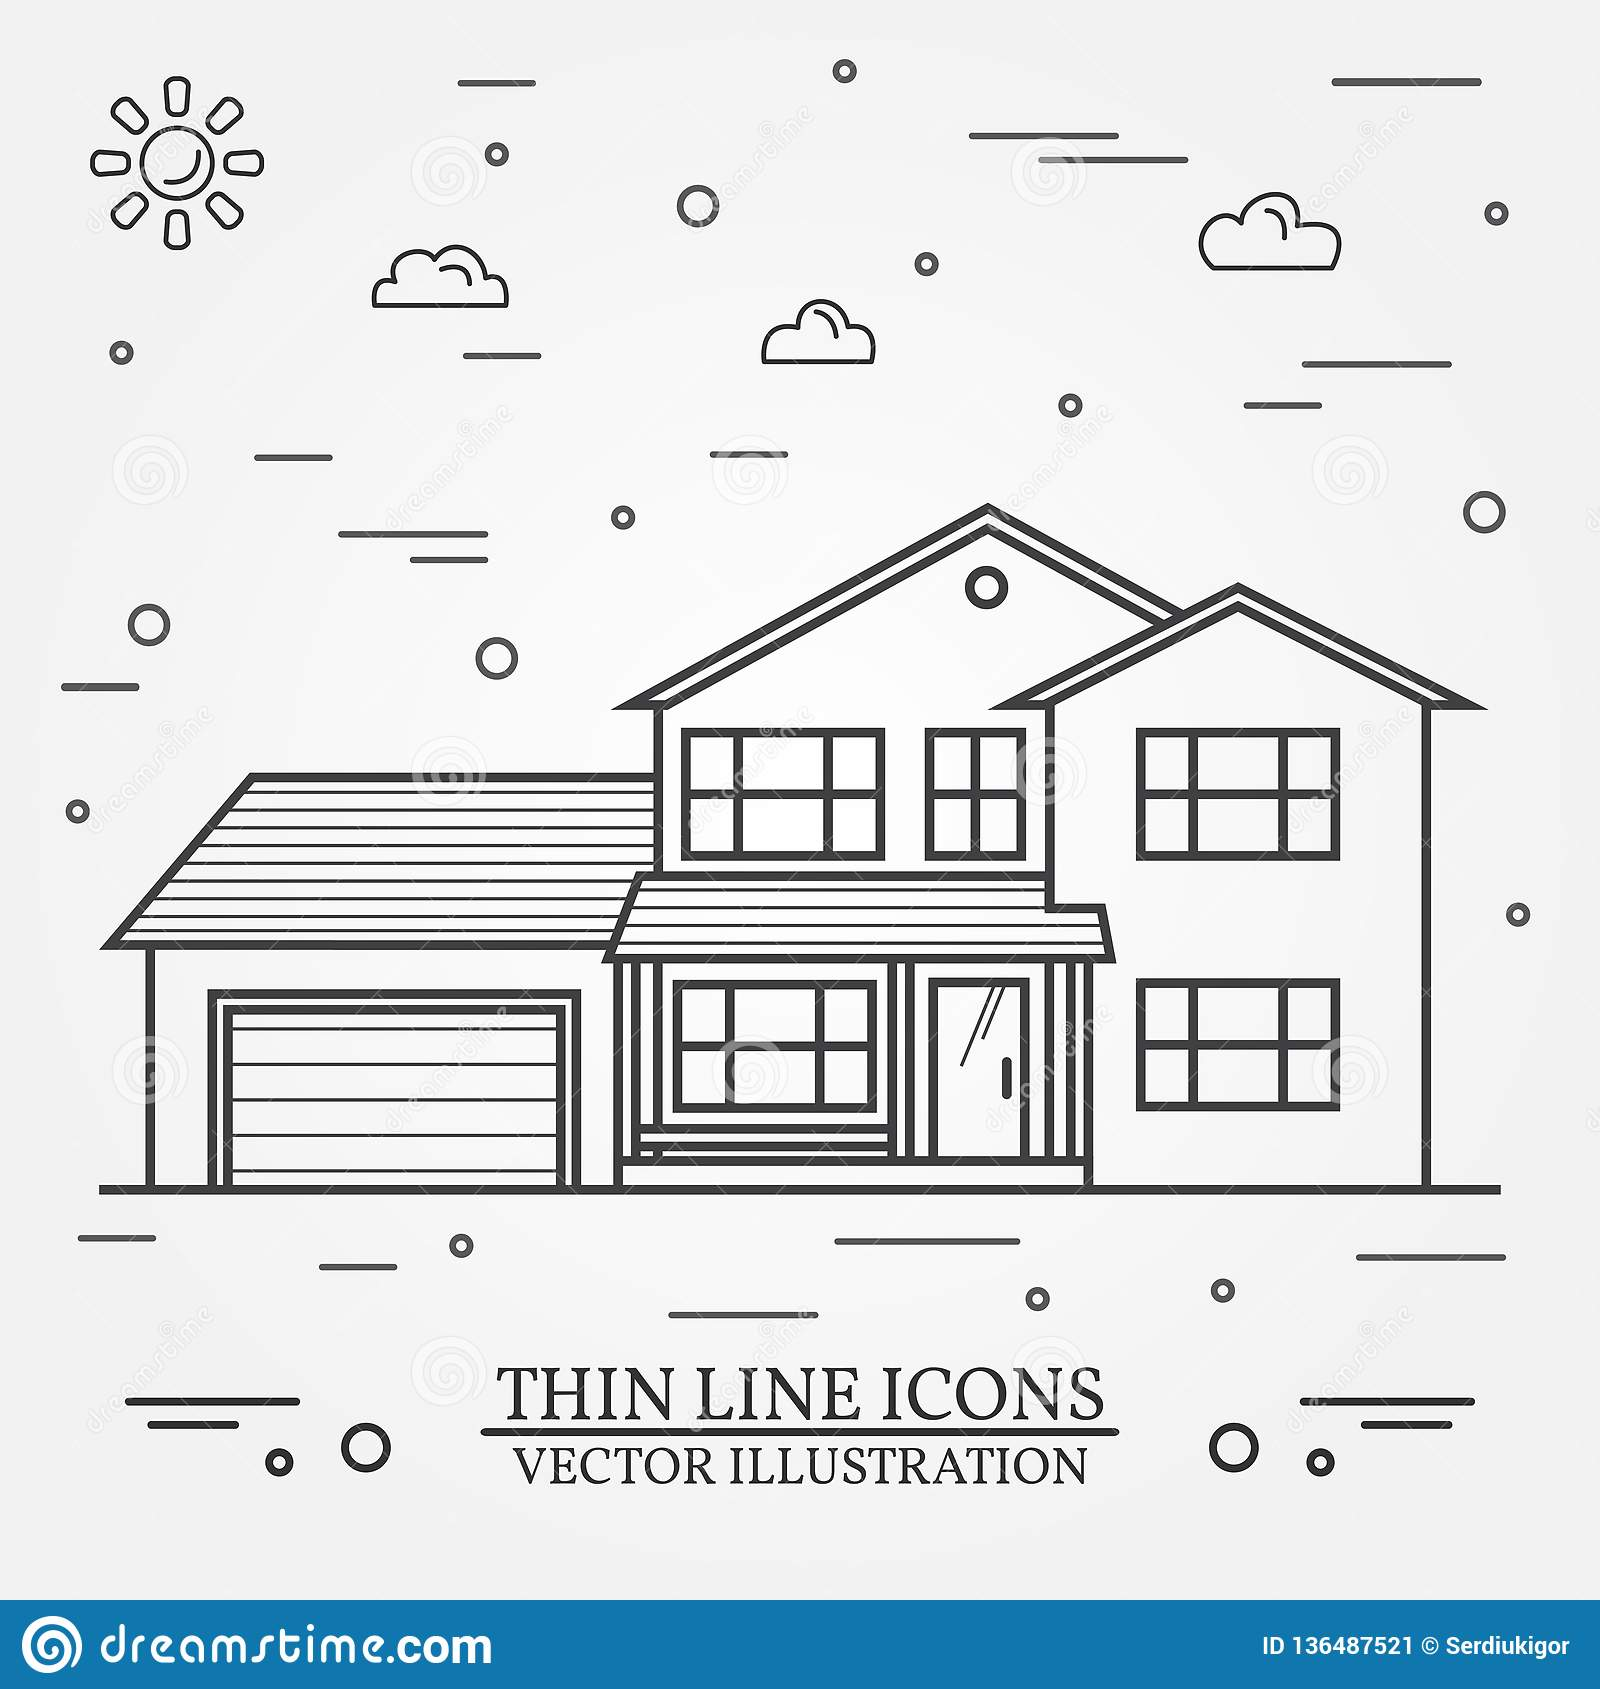 Vector thin line icon suburban american house for web design and application interface also